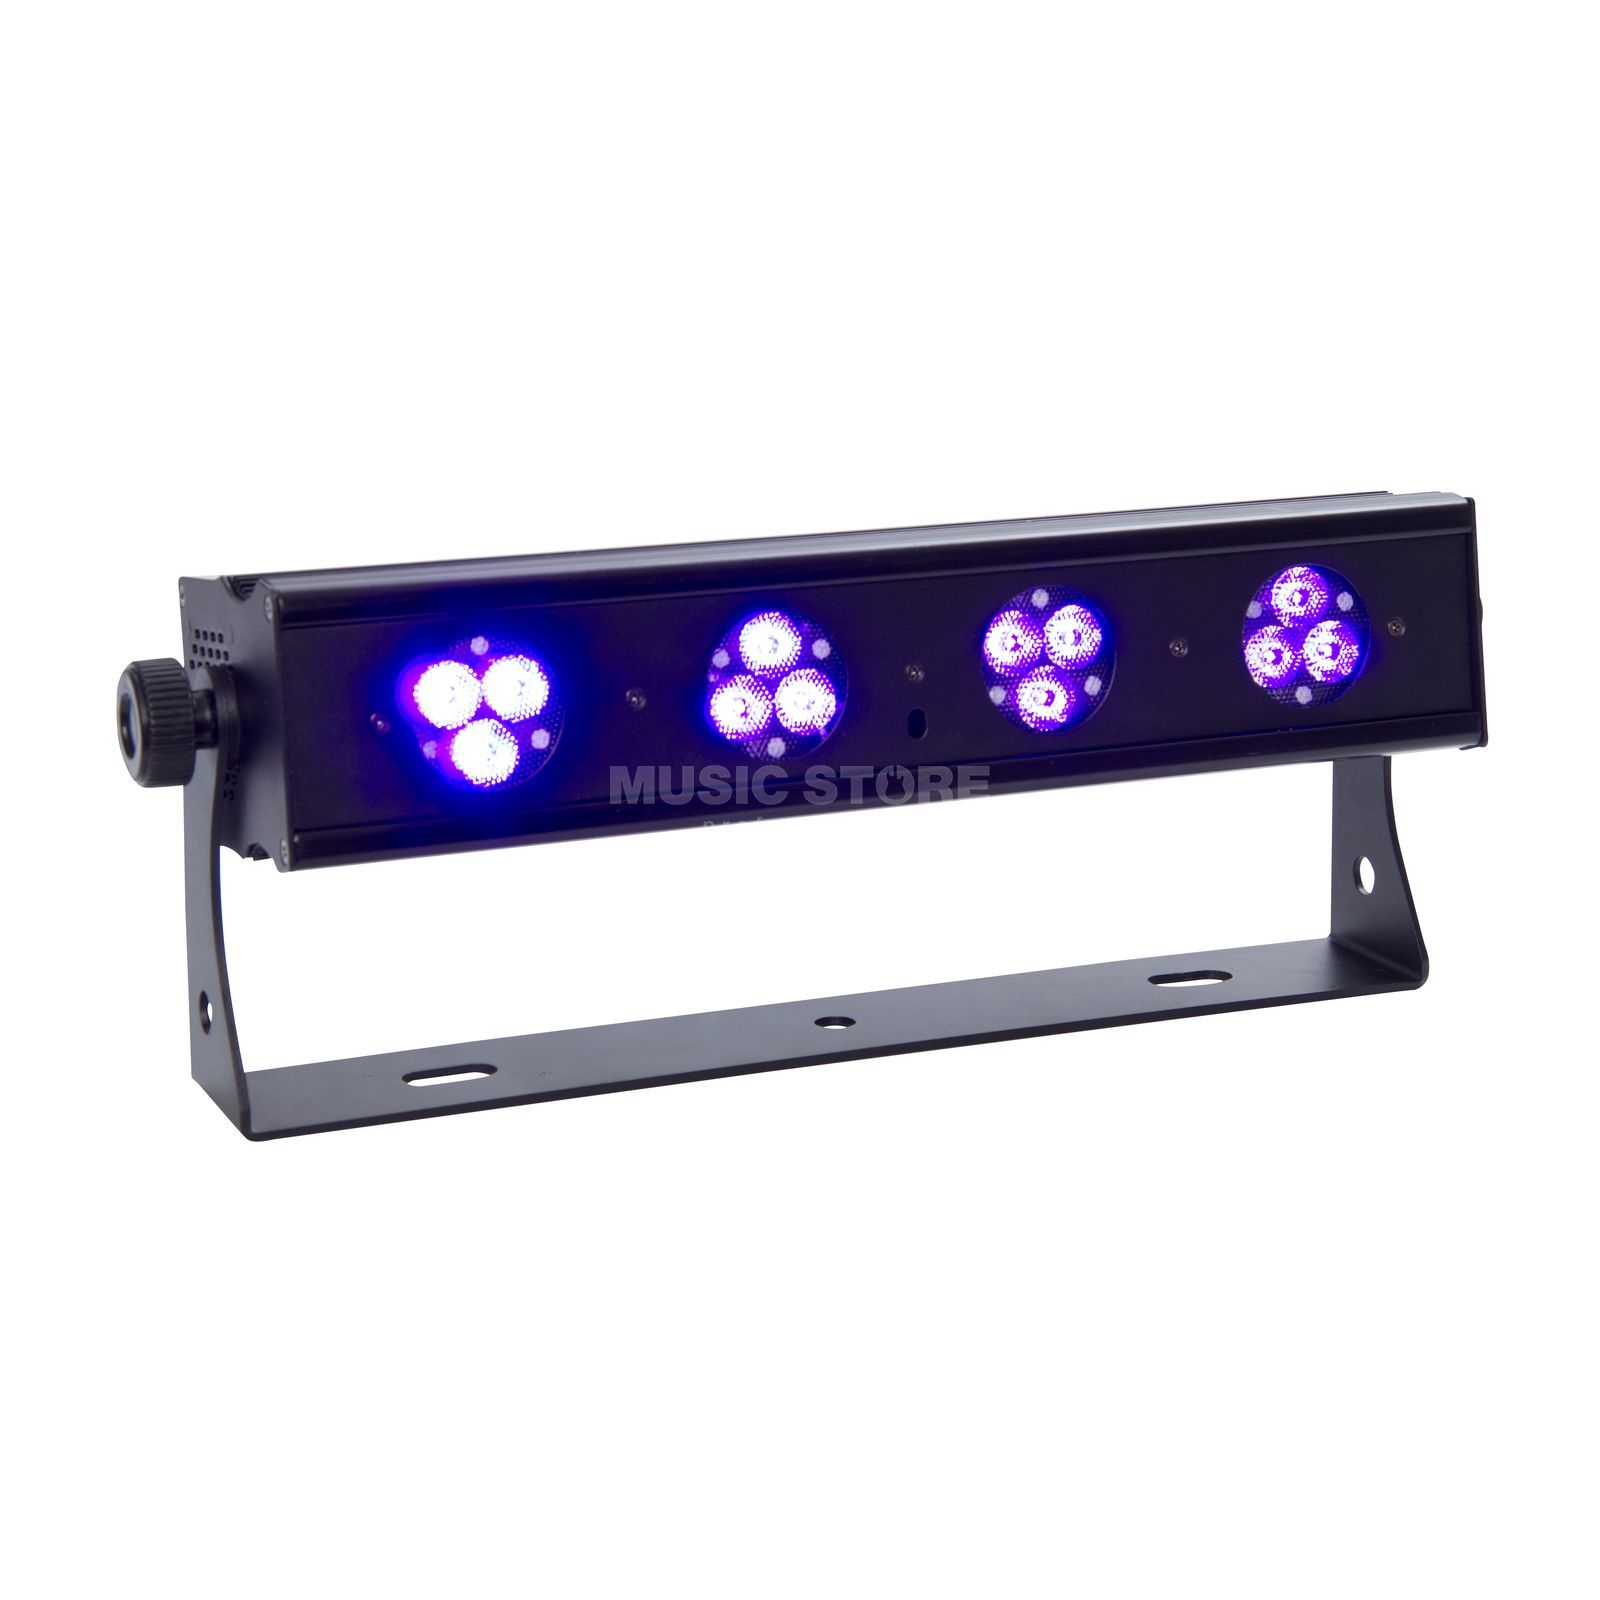 lightmaXX Platinum UV-BAR LED short 12x 1W UV, IR-Fernbedienung Produktbild